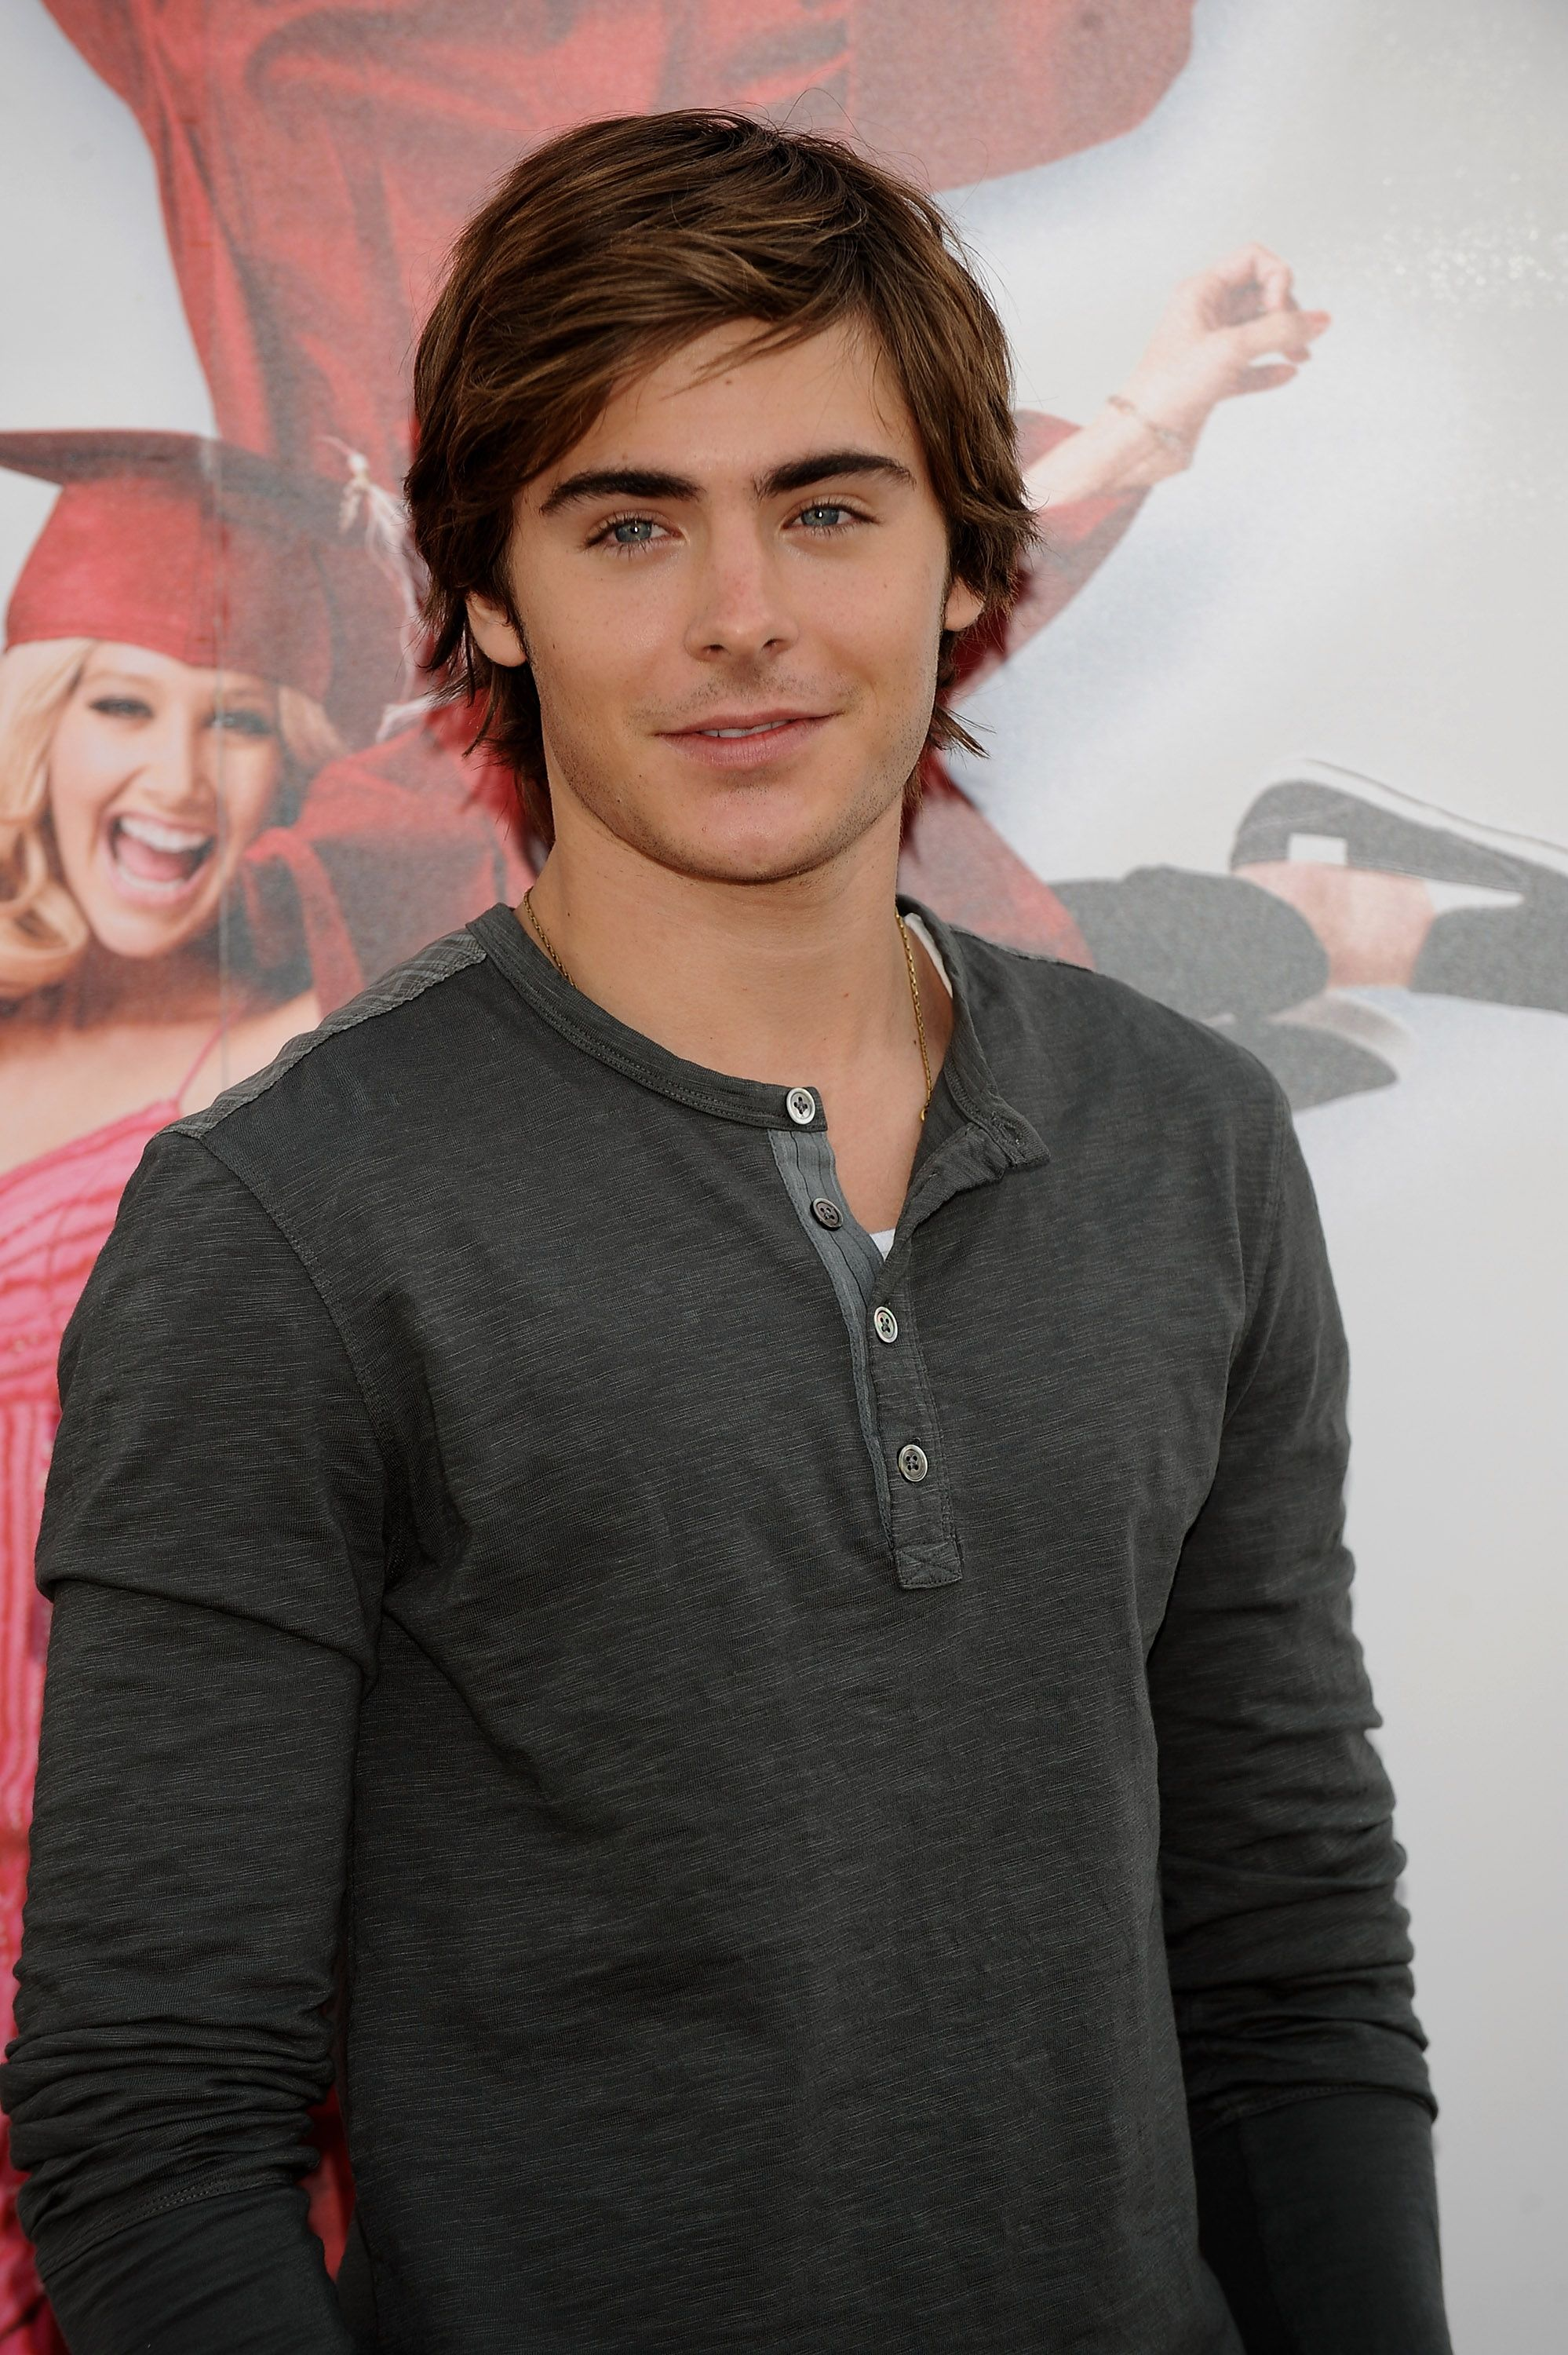 10 Best Zac Efron Hairstyles of All Time for Men to Try